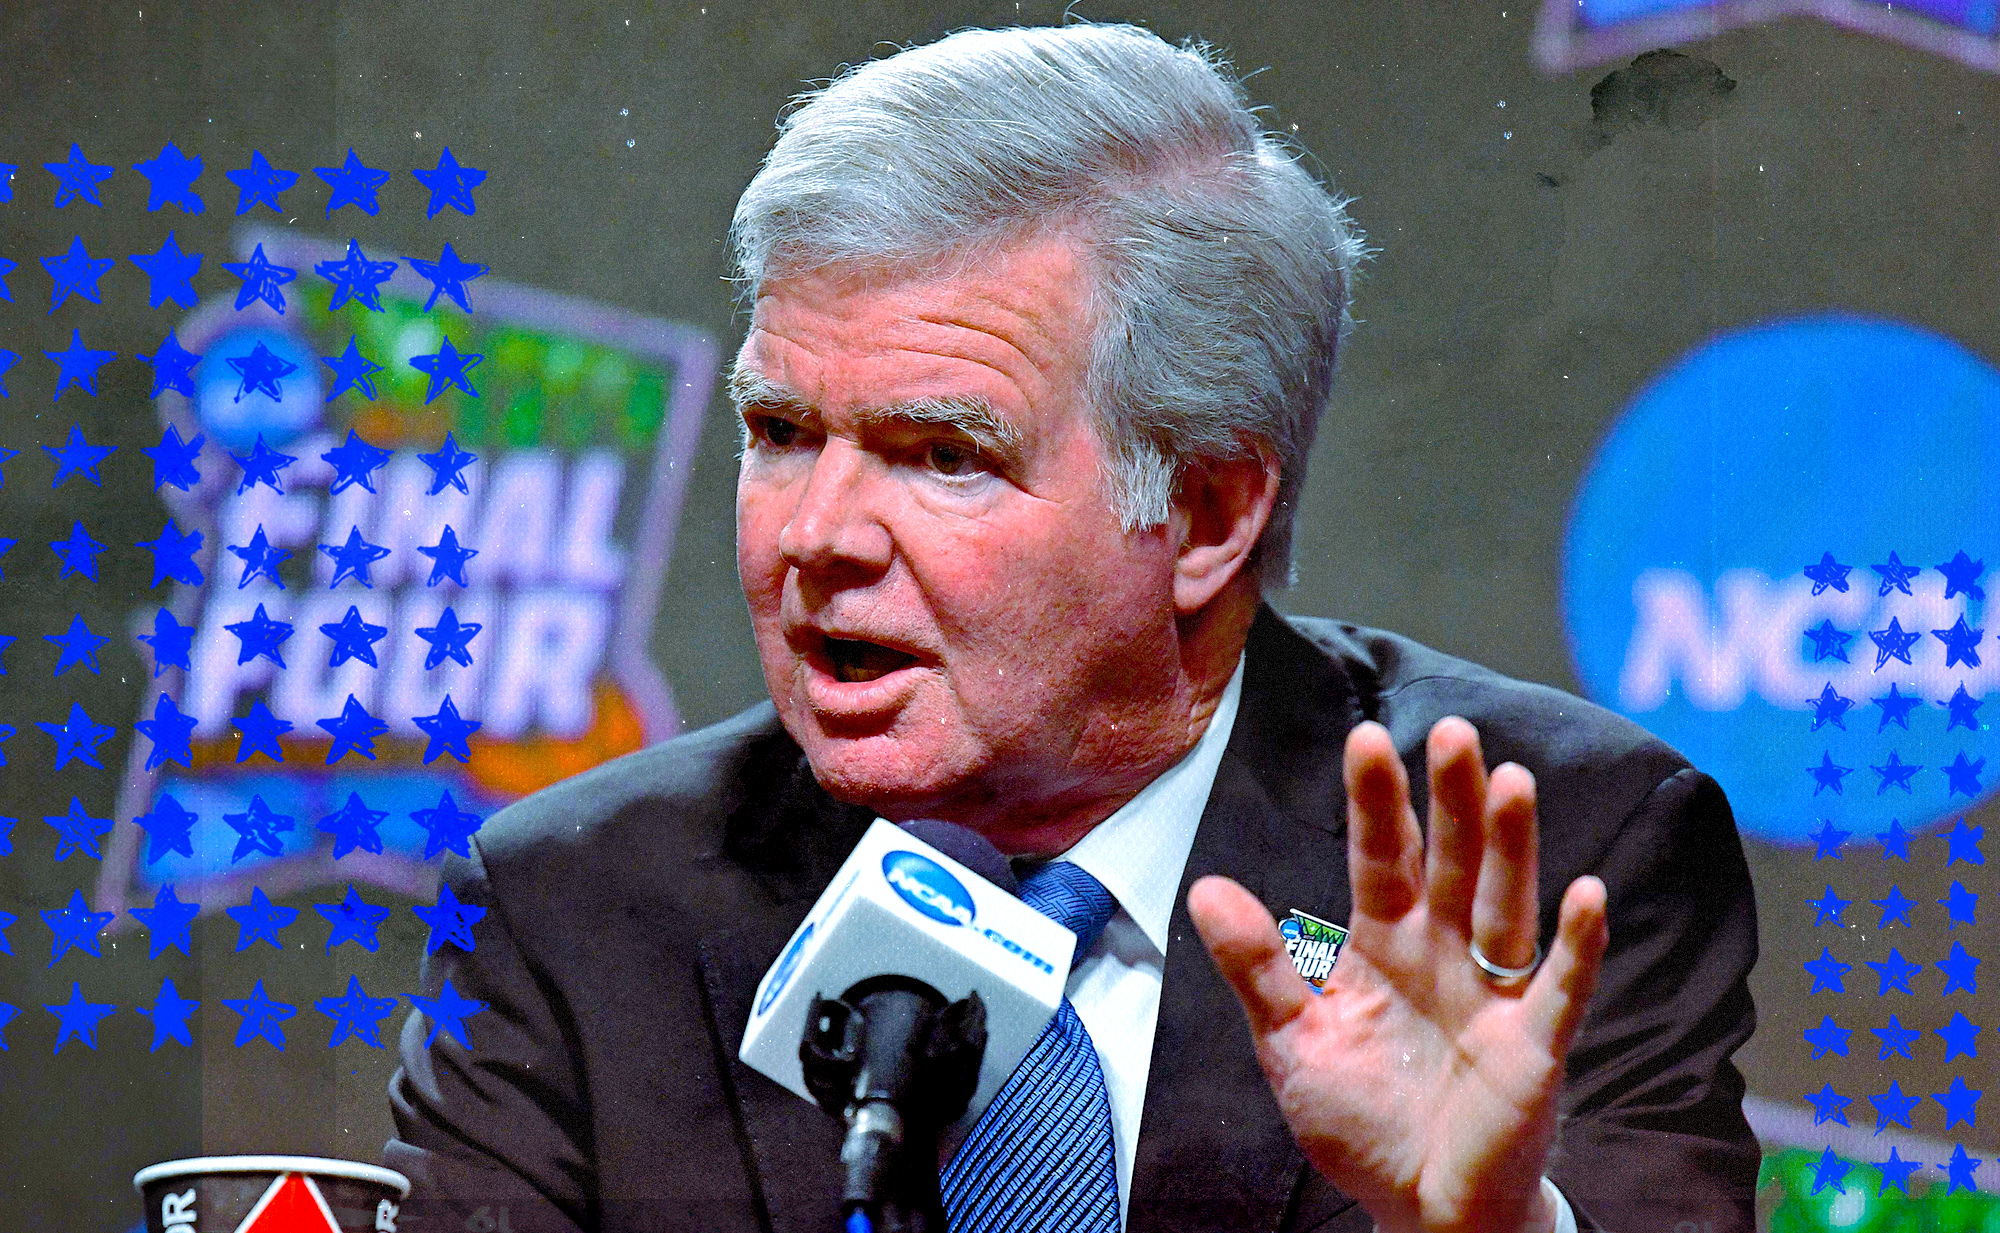 NCAA president Mark Emmert speaking at a news conference.